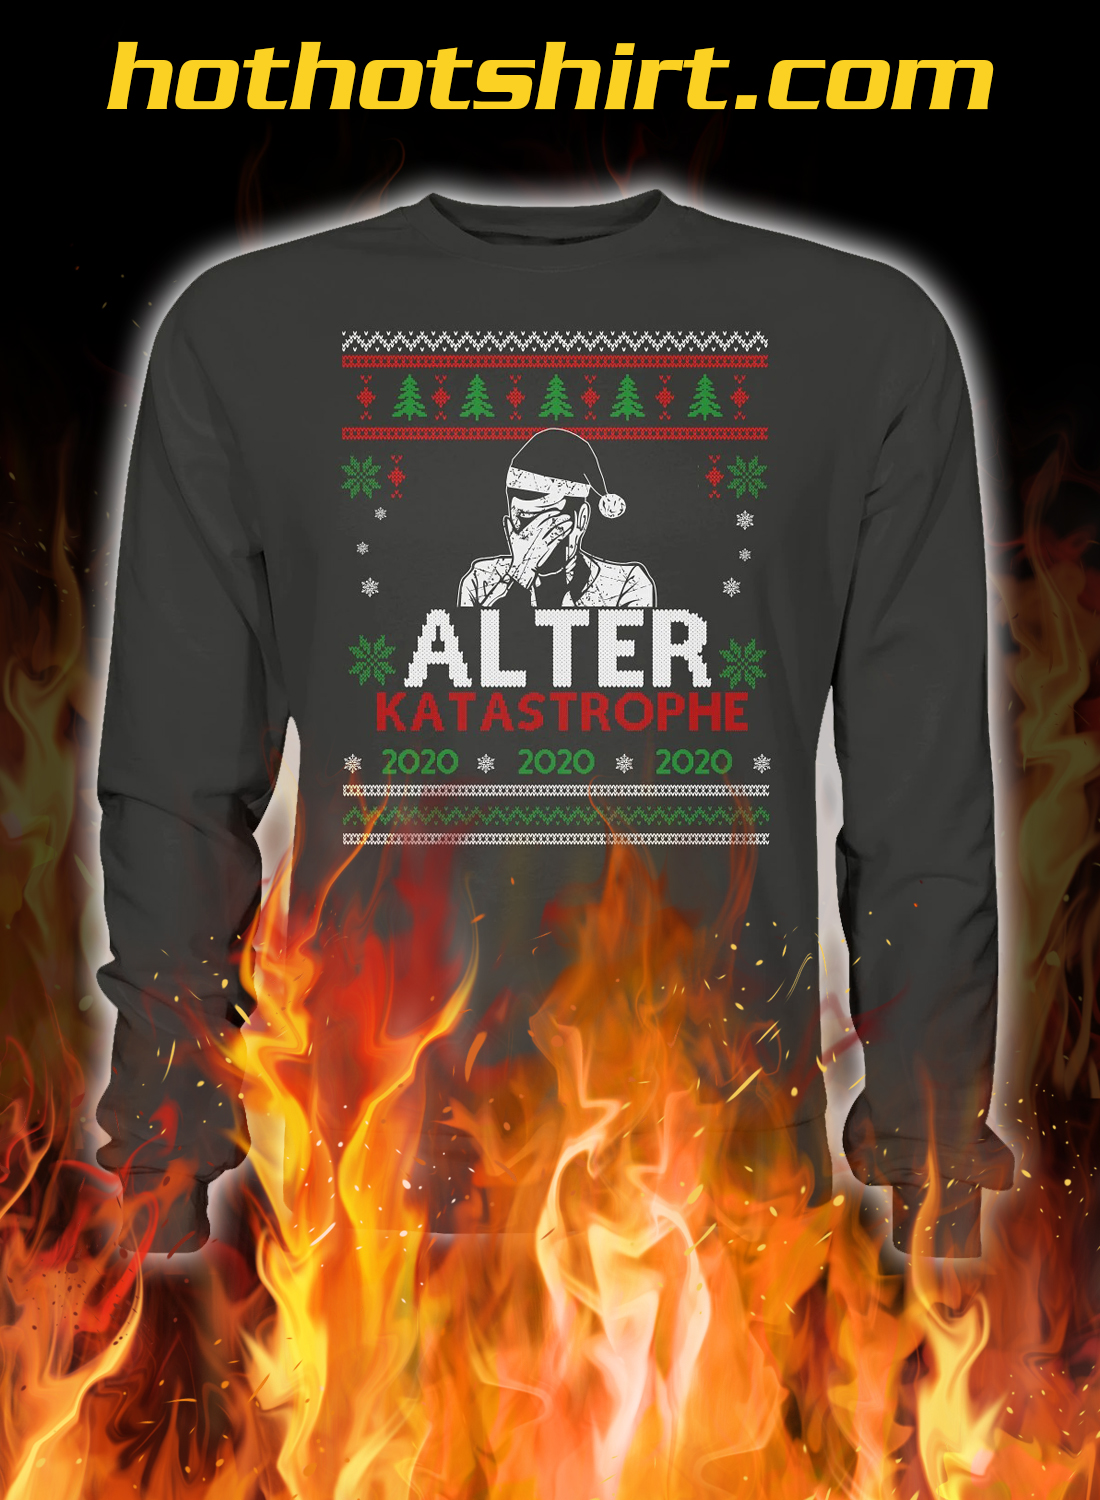 Alter katastrophe christmas ugly sweater- grey